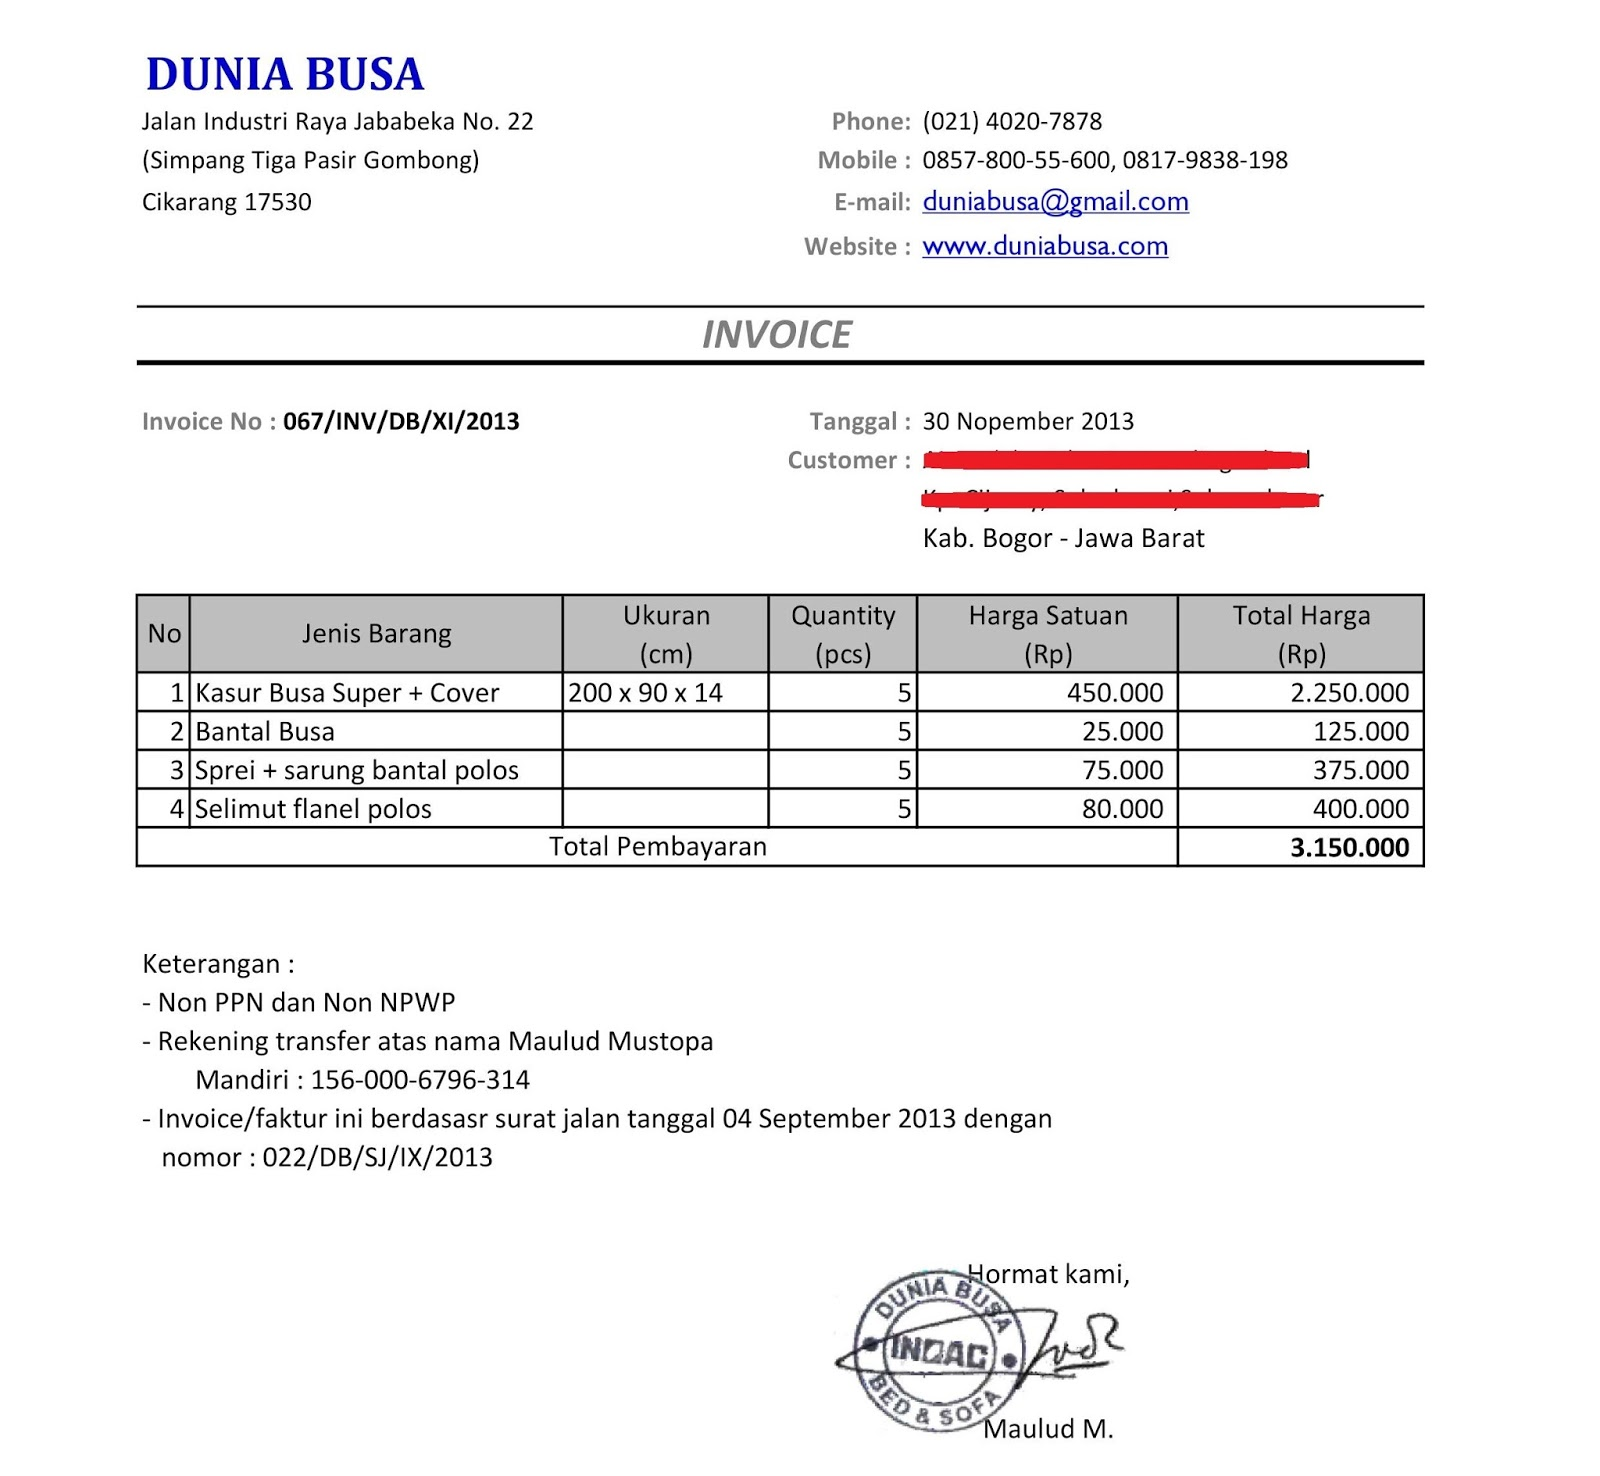 Aldiablosus  Unique Free Invoice Online  Create Invoice Online  Invoice Template  With Lovable Contoh Format Invoice Atau Surat Tagihan  Brankas Arsip  Free Invoice Online With Astonishing Invoicing Software Small Business Also Invoice Service Template In Addition Invoice Template For Contractors And Sample Invoice In Excel As Well As Commercial Invoice Export Additionally Invoices In Word From Sklepco With Aldiablosus  Lovable Free Invoice Online  Create Invoice Online  Invoice Template  With Astonishing Contoh Format Invoice Atau Surat Tagihan  Brankas Arsip  Free Invoice Online And Unique Invoicing Software Small Business Also Invoice Service Template In Addition Invoice Template For Contractors From Sklepco